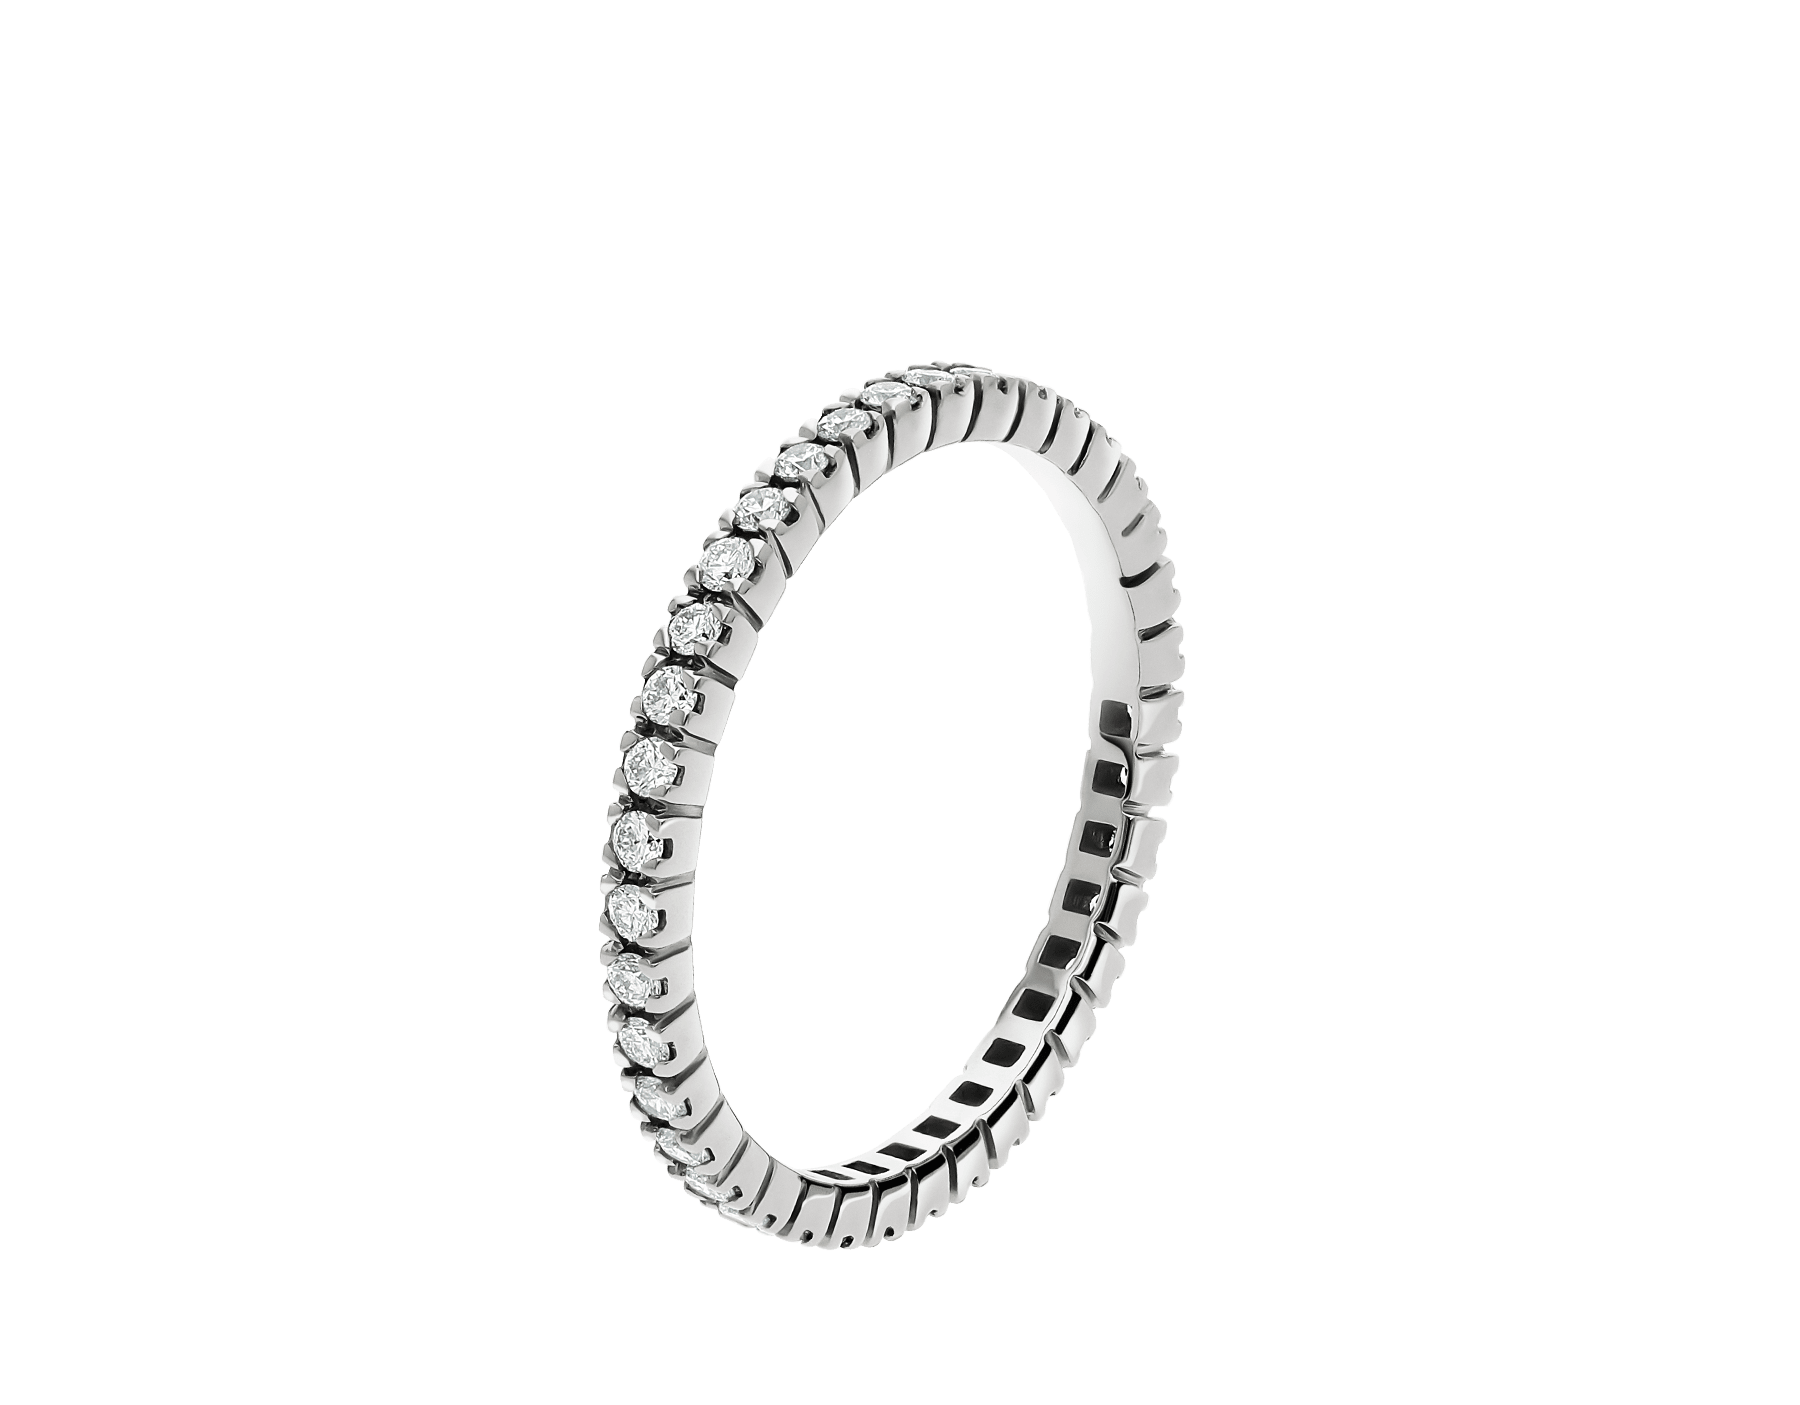 Eternity Band in thin size in 18 kt white gold with round brilliant cut diamonds AN856362 image 1